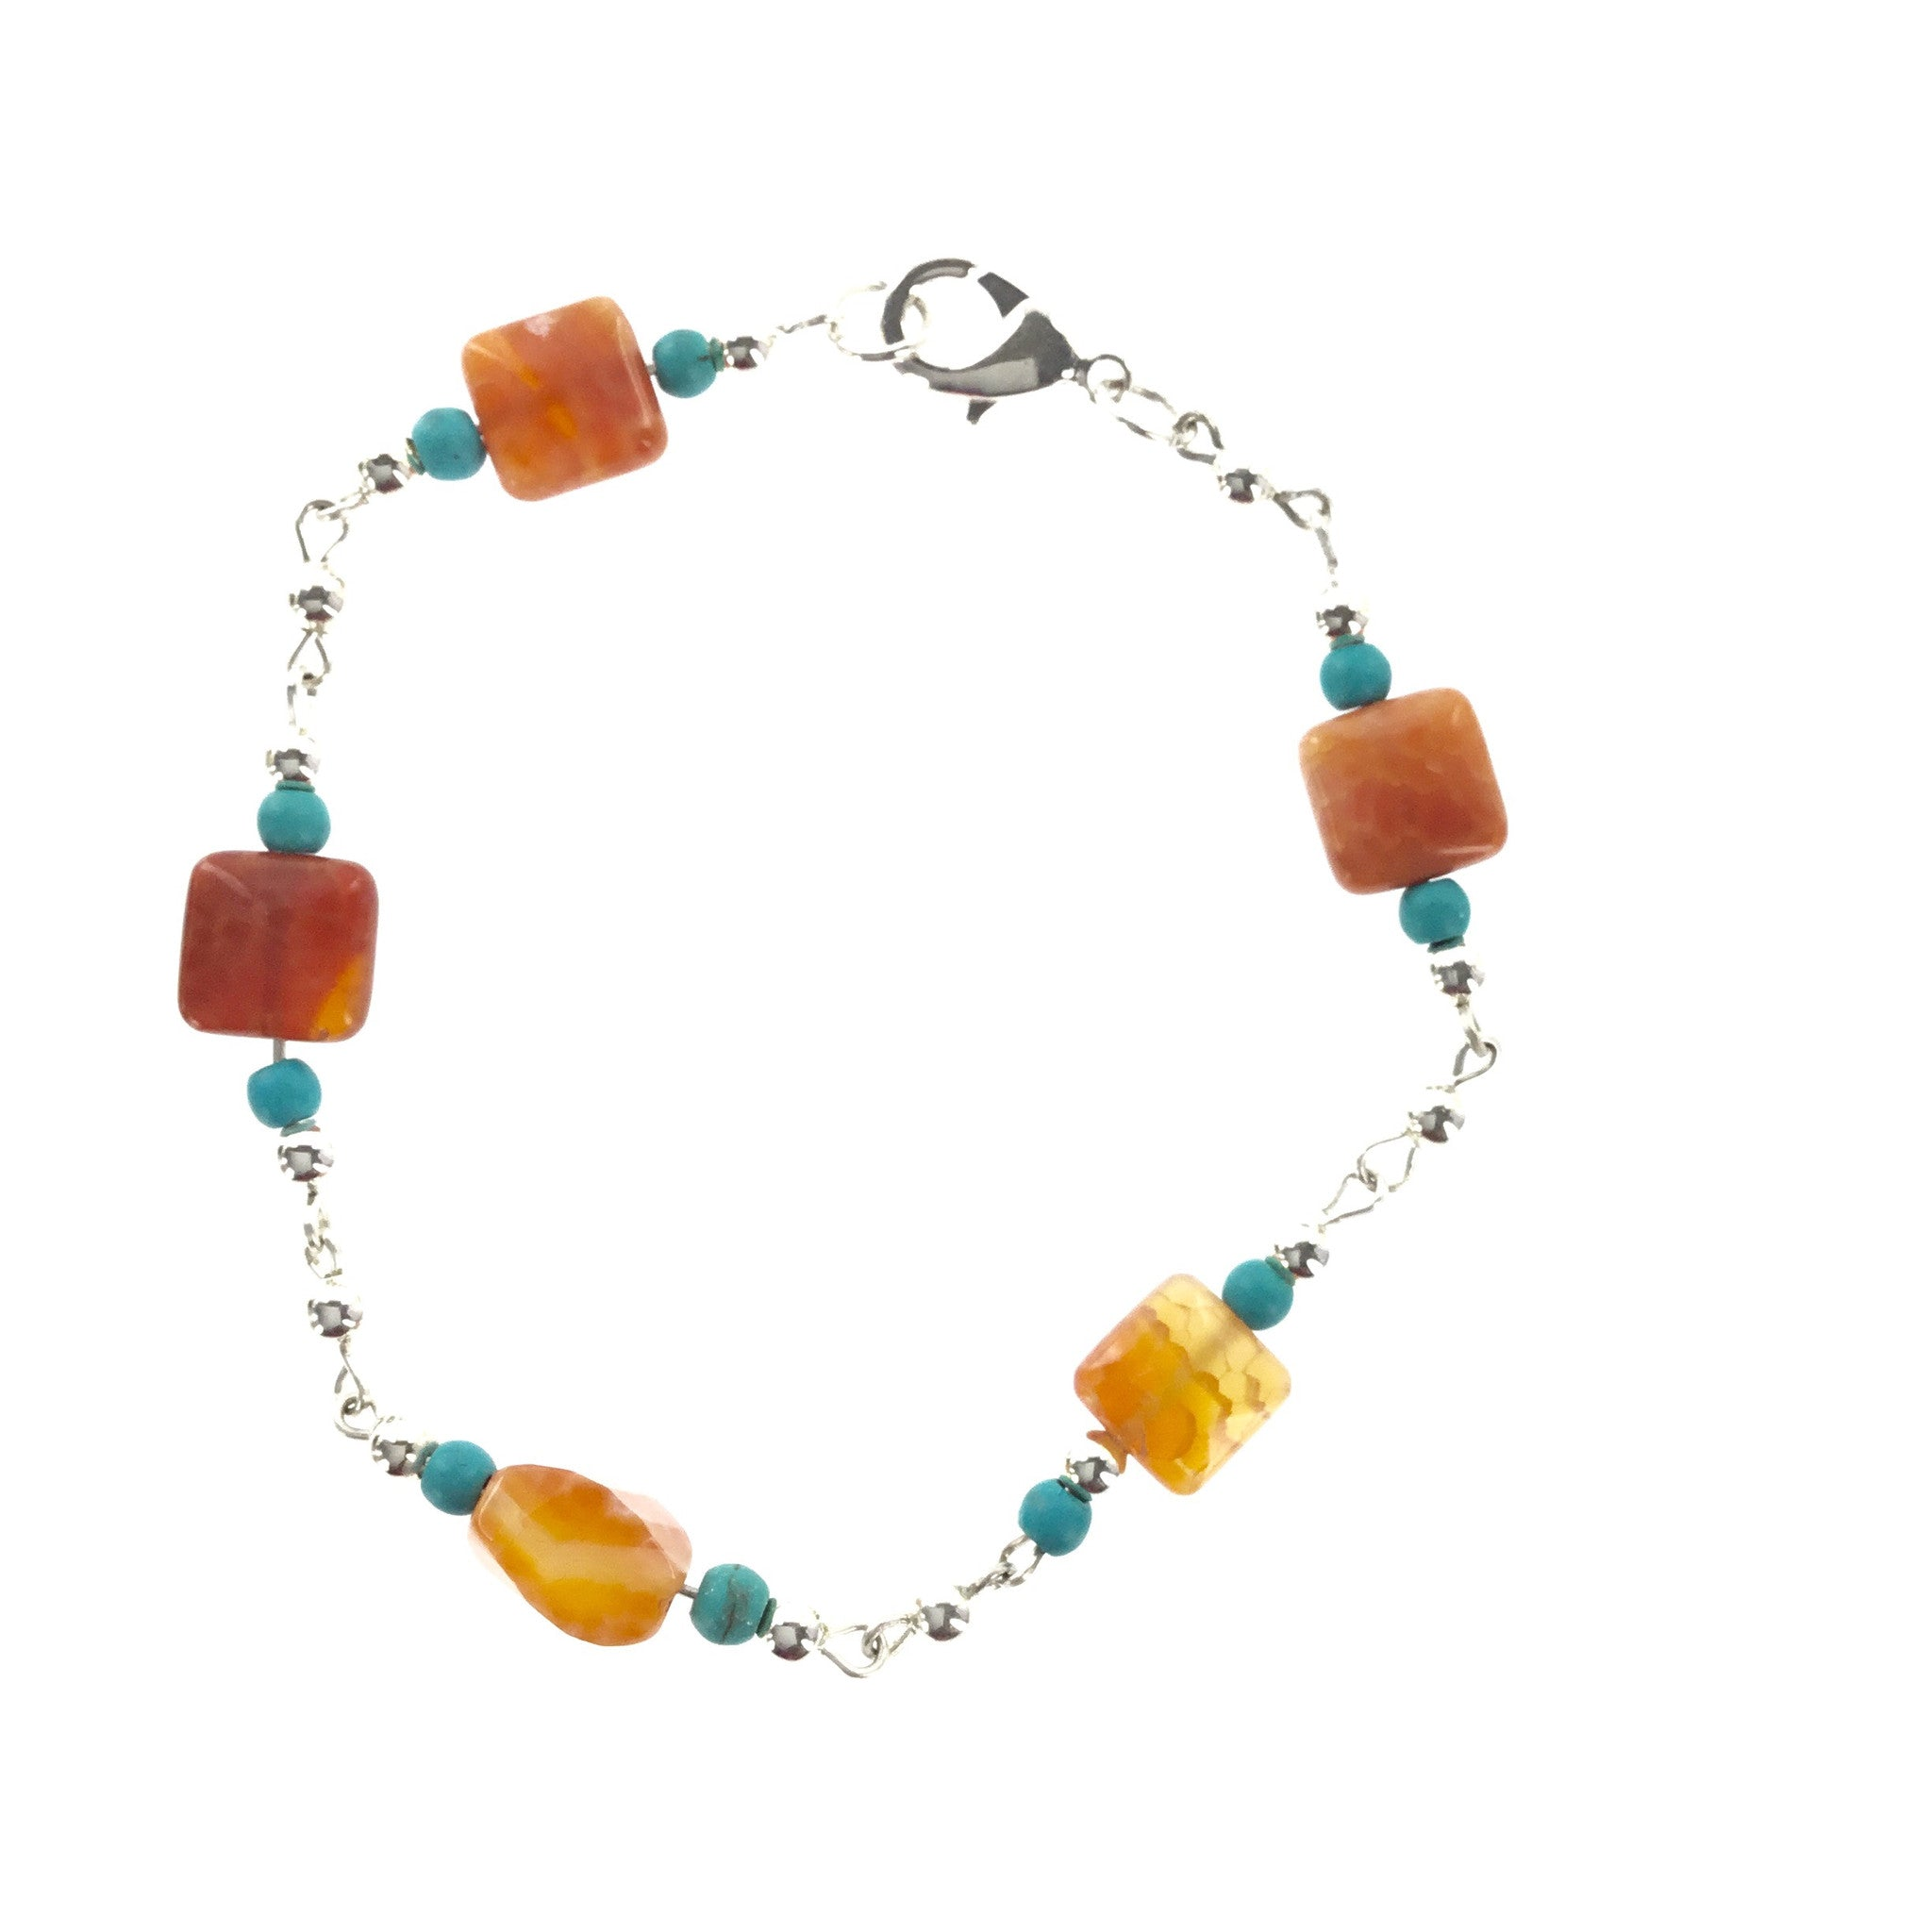 Fire Red Agate and Turquoise Blue Bracelet - Real Chic Boutique  - 2